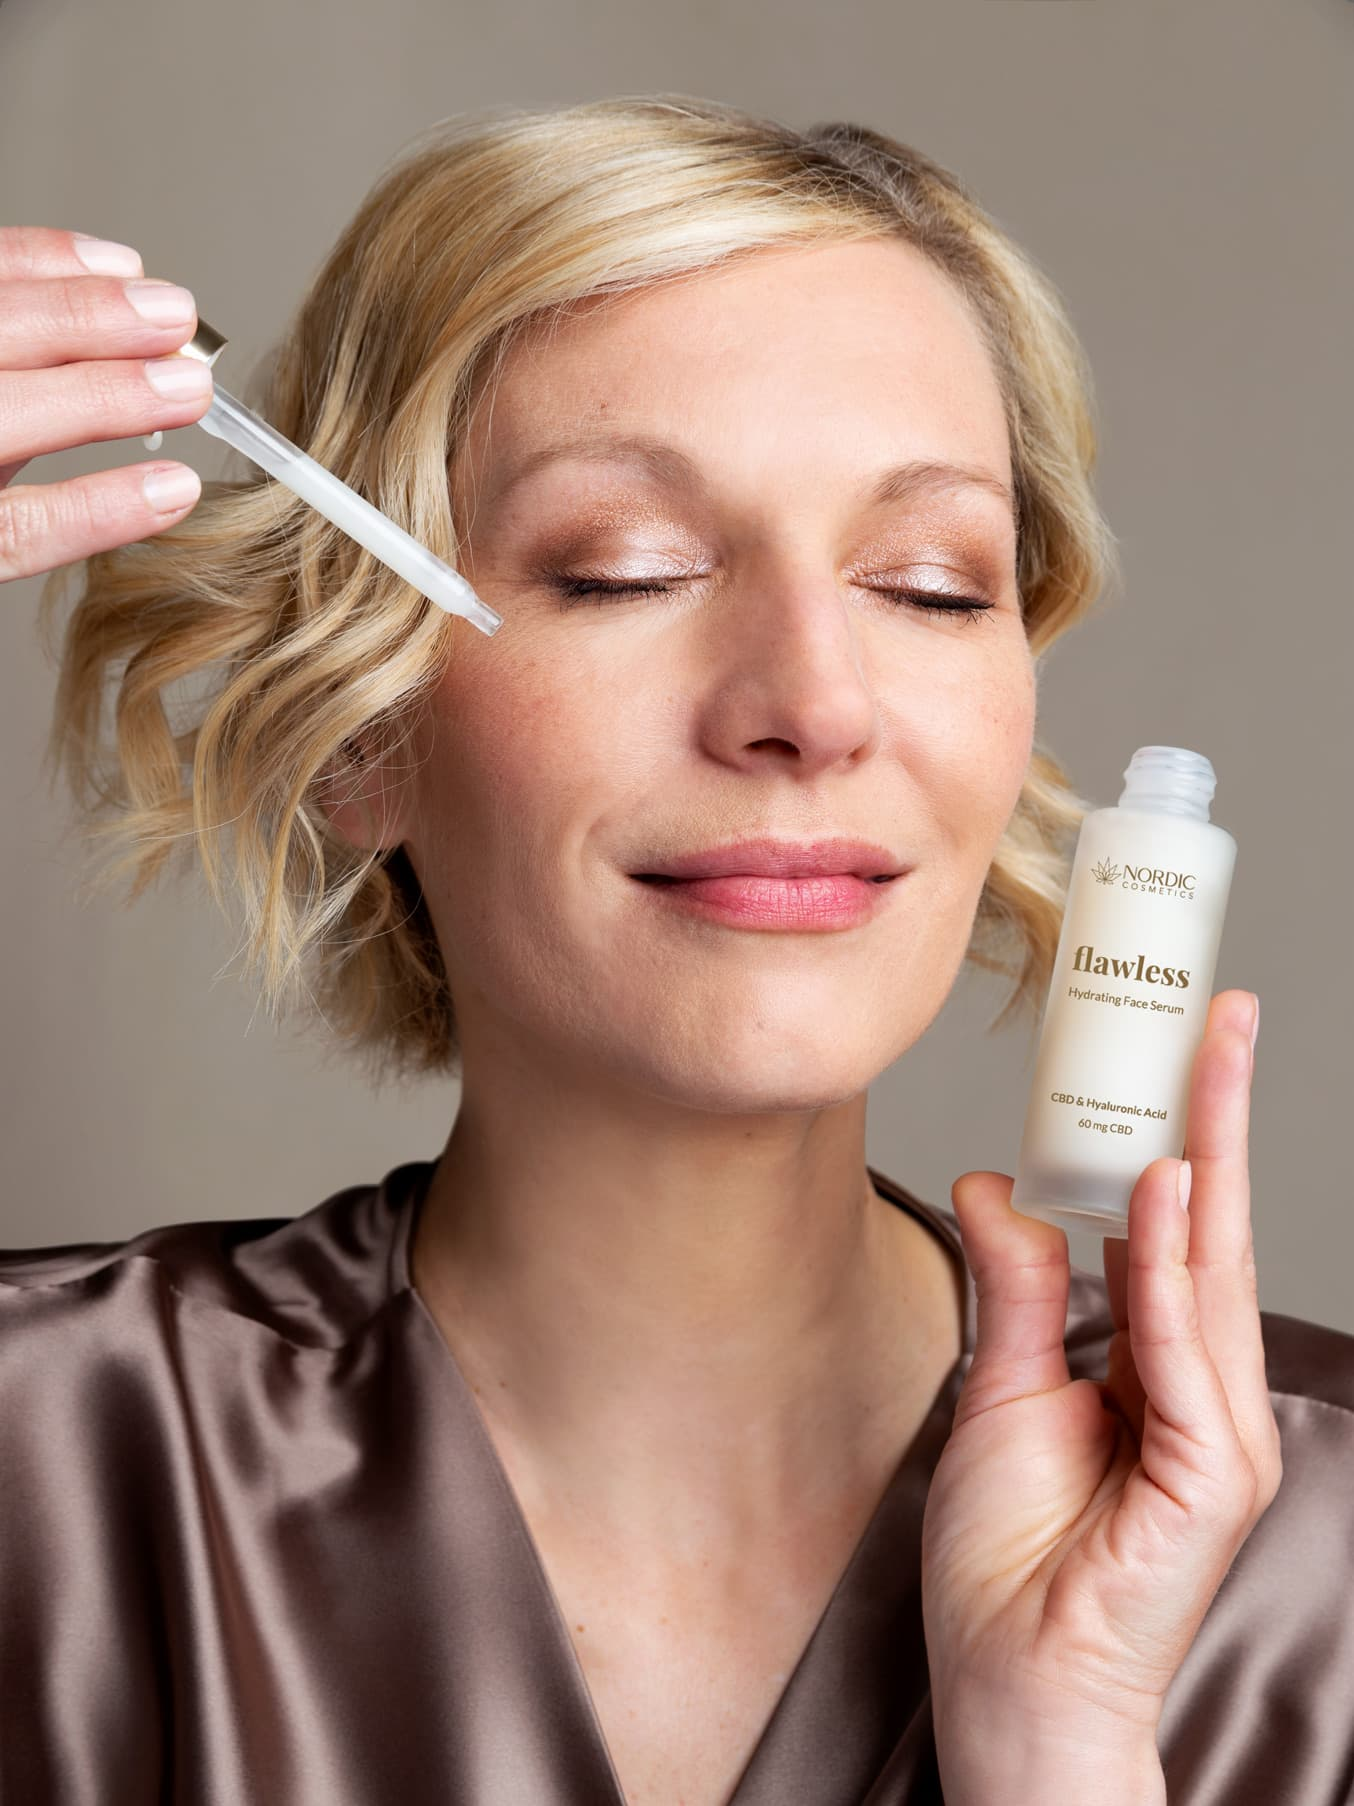 Face serum in use